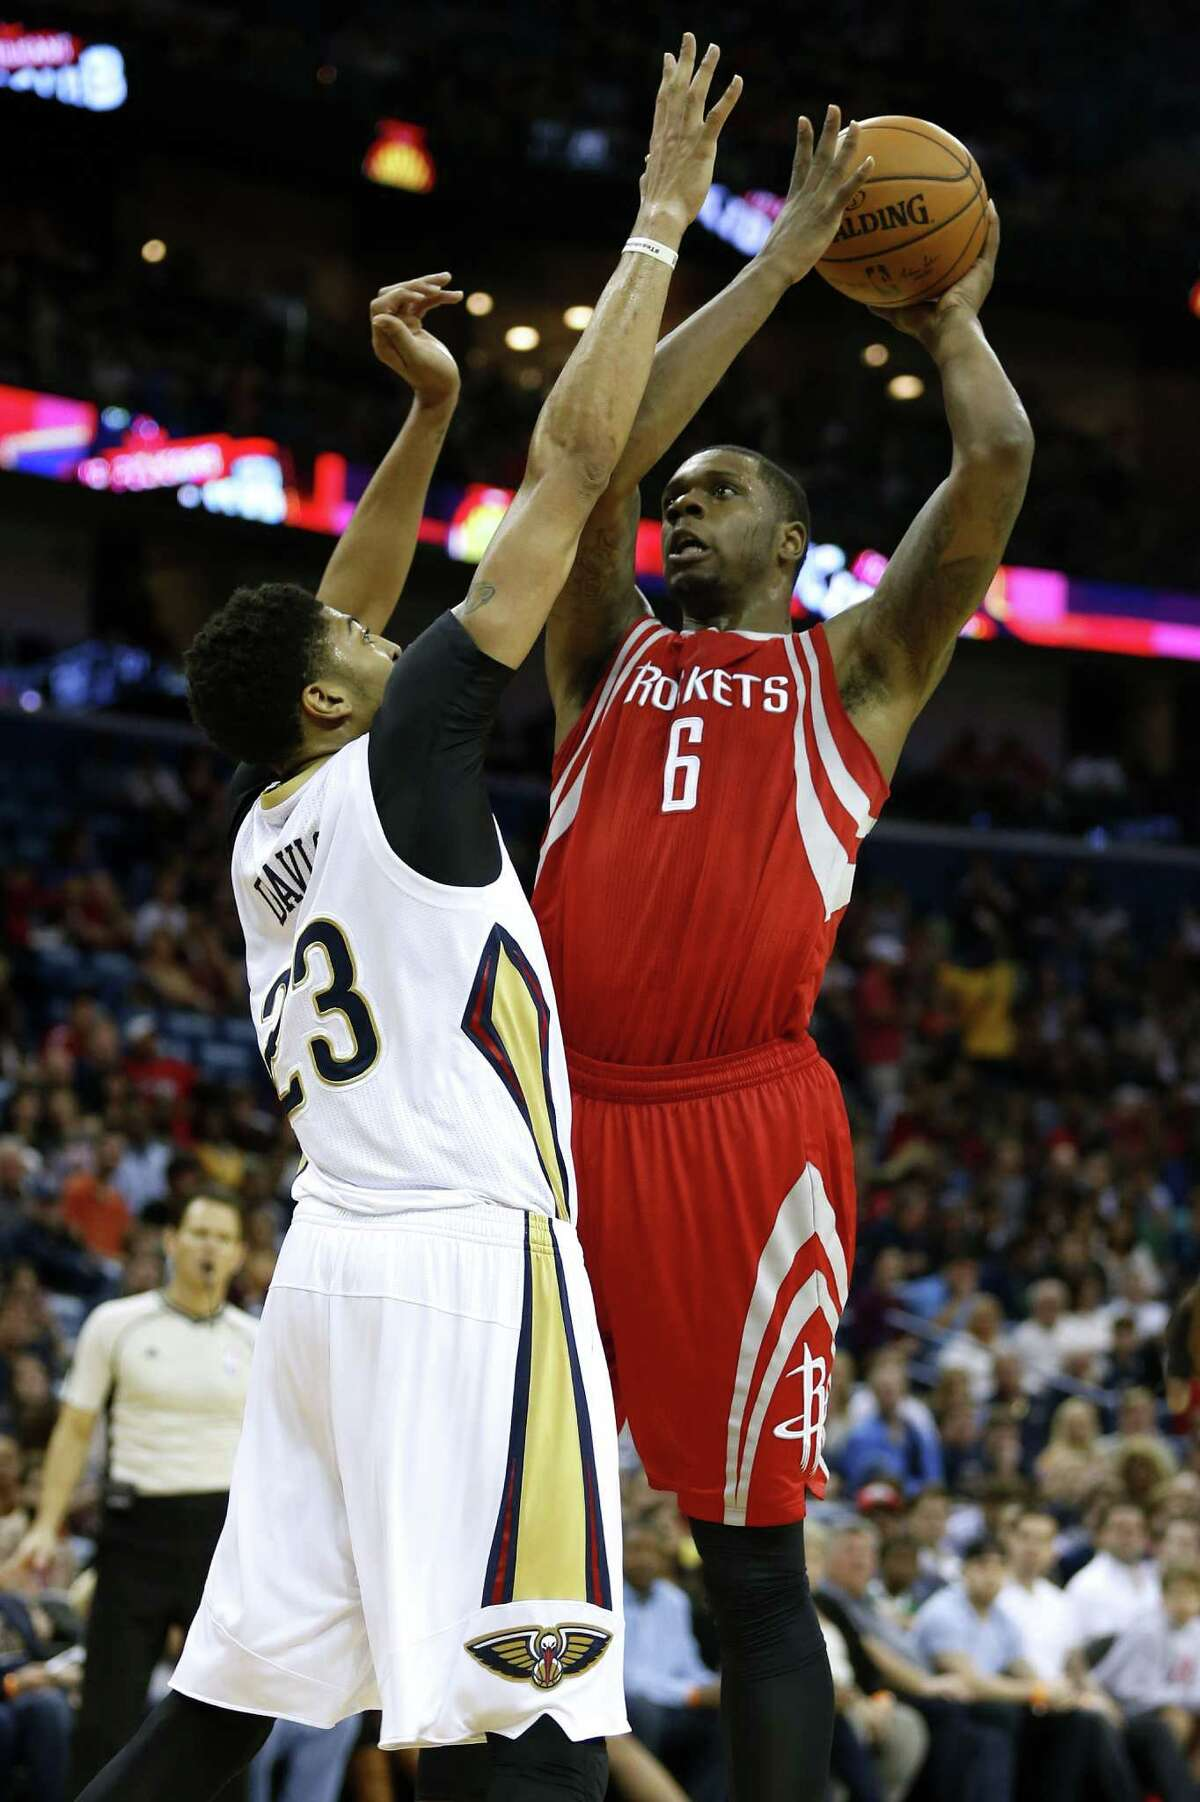 The Rockets' Terrence Jones, right, drives on Anthony Davis of the Pelicans. Jones had 13 points on 4-for-12 shooting off the bench in the 110-108 loss.